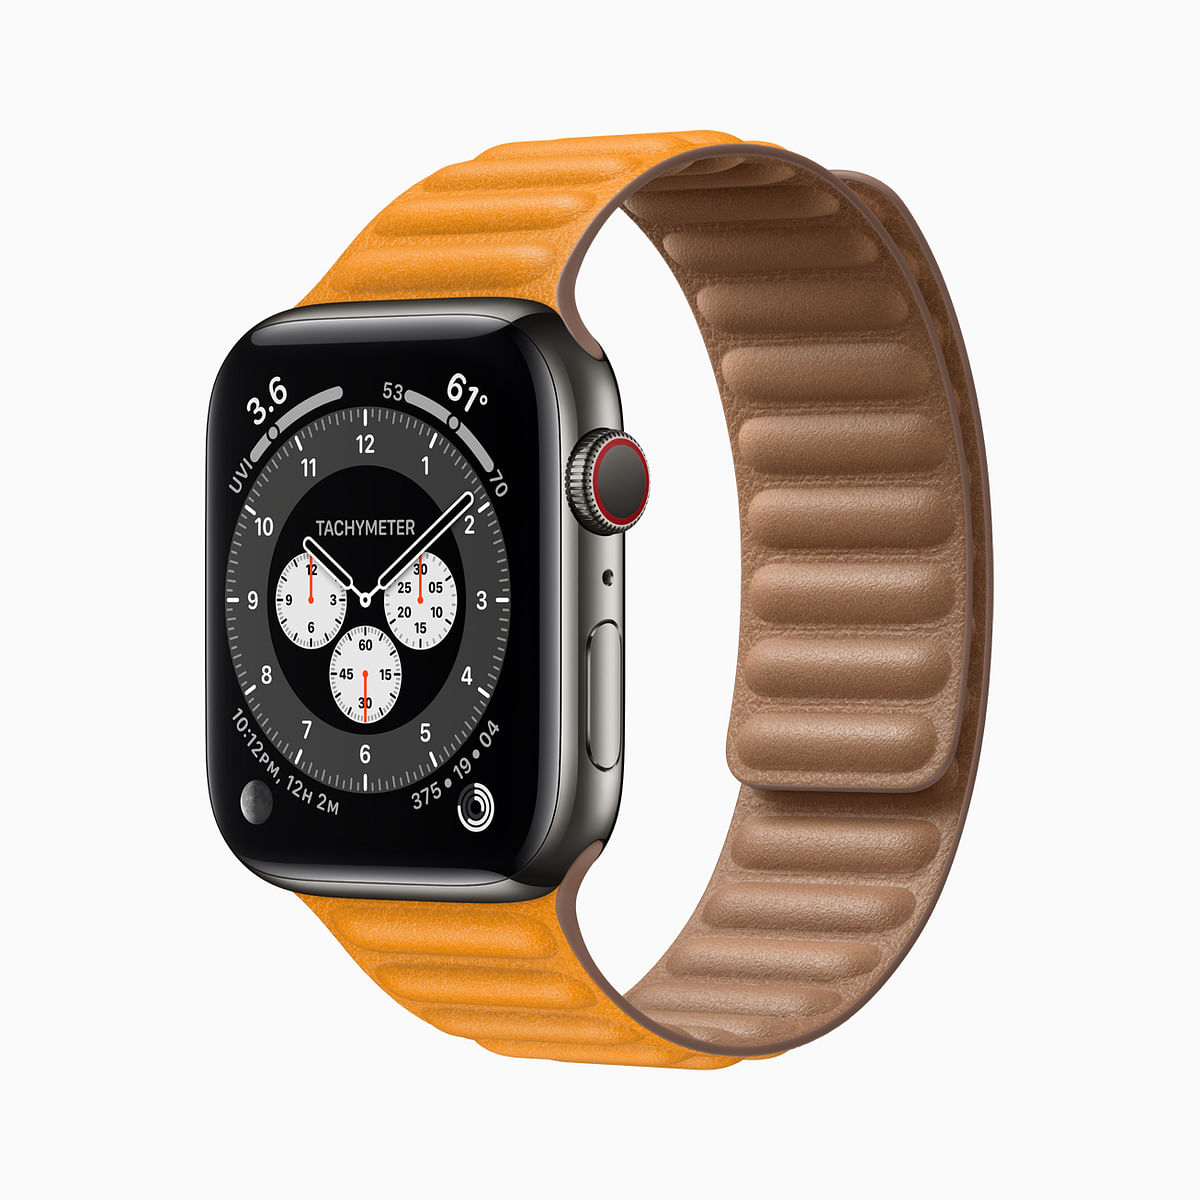 The Apple Watch Series 6 Stainless Steel with an orange band.